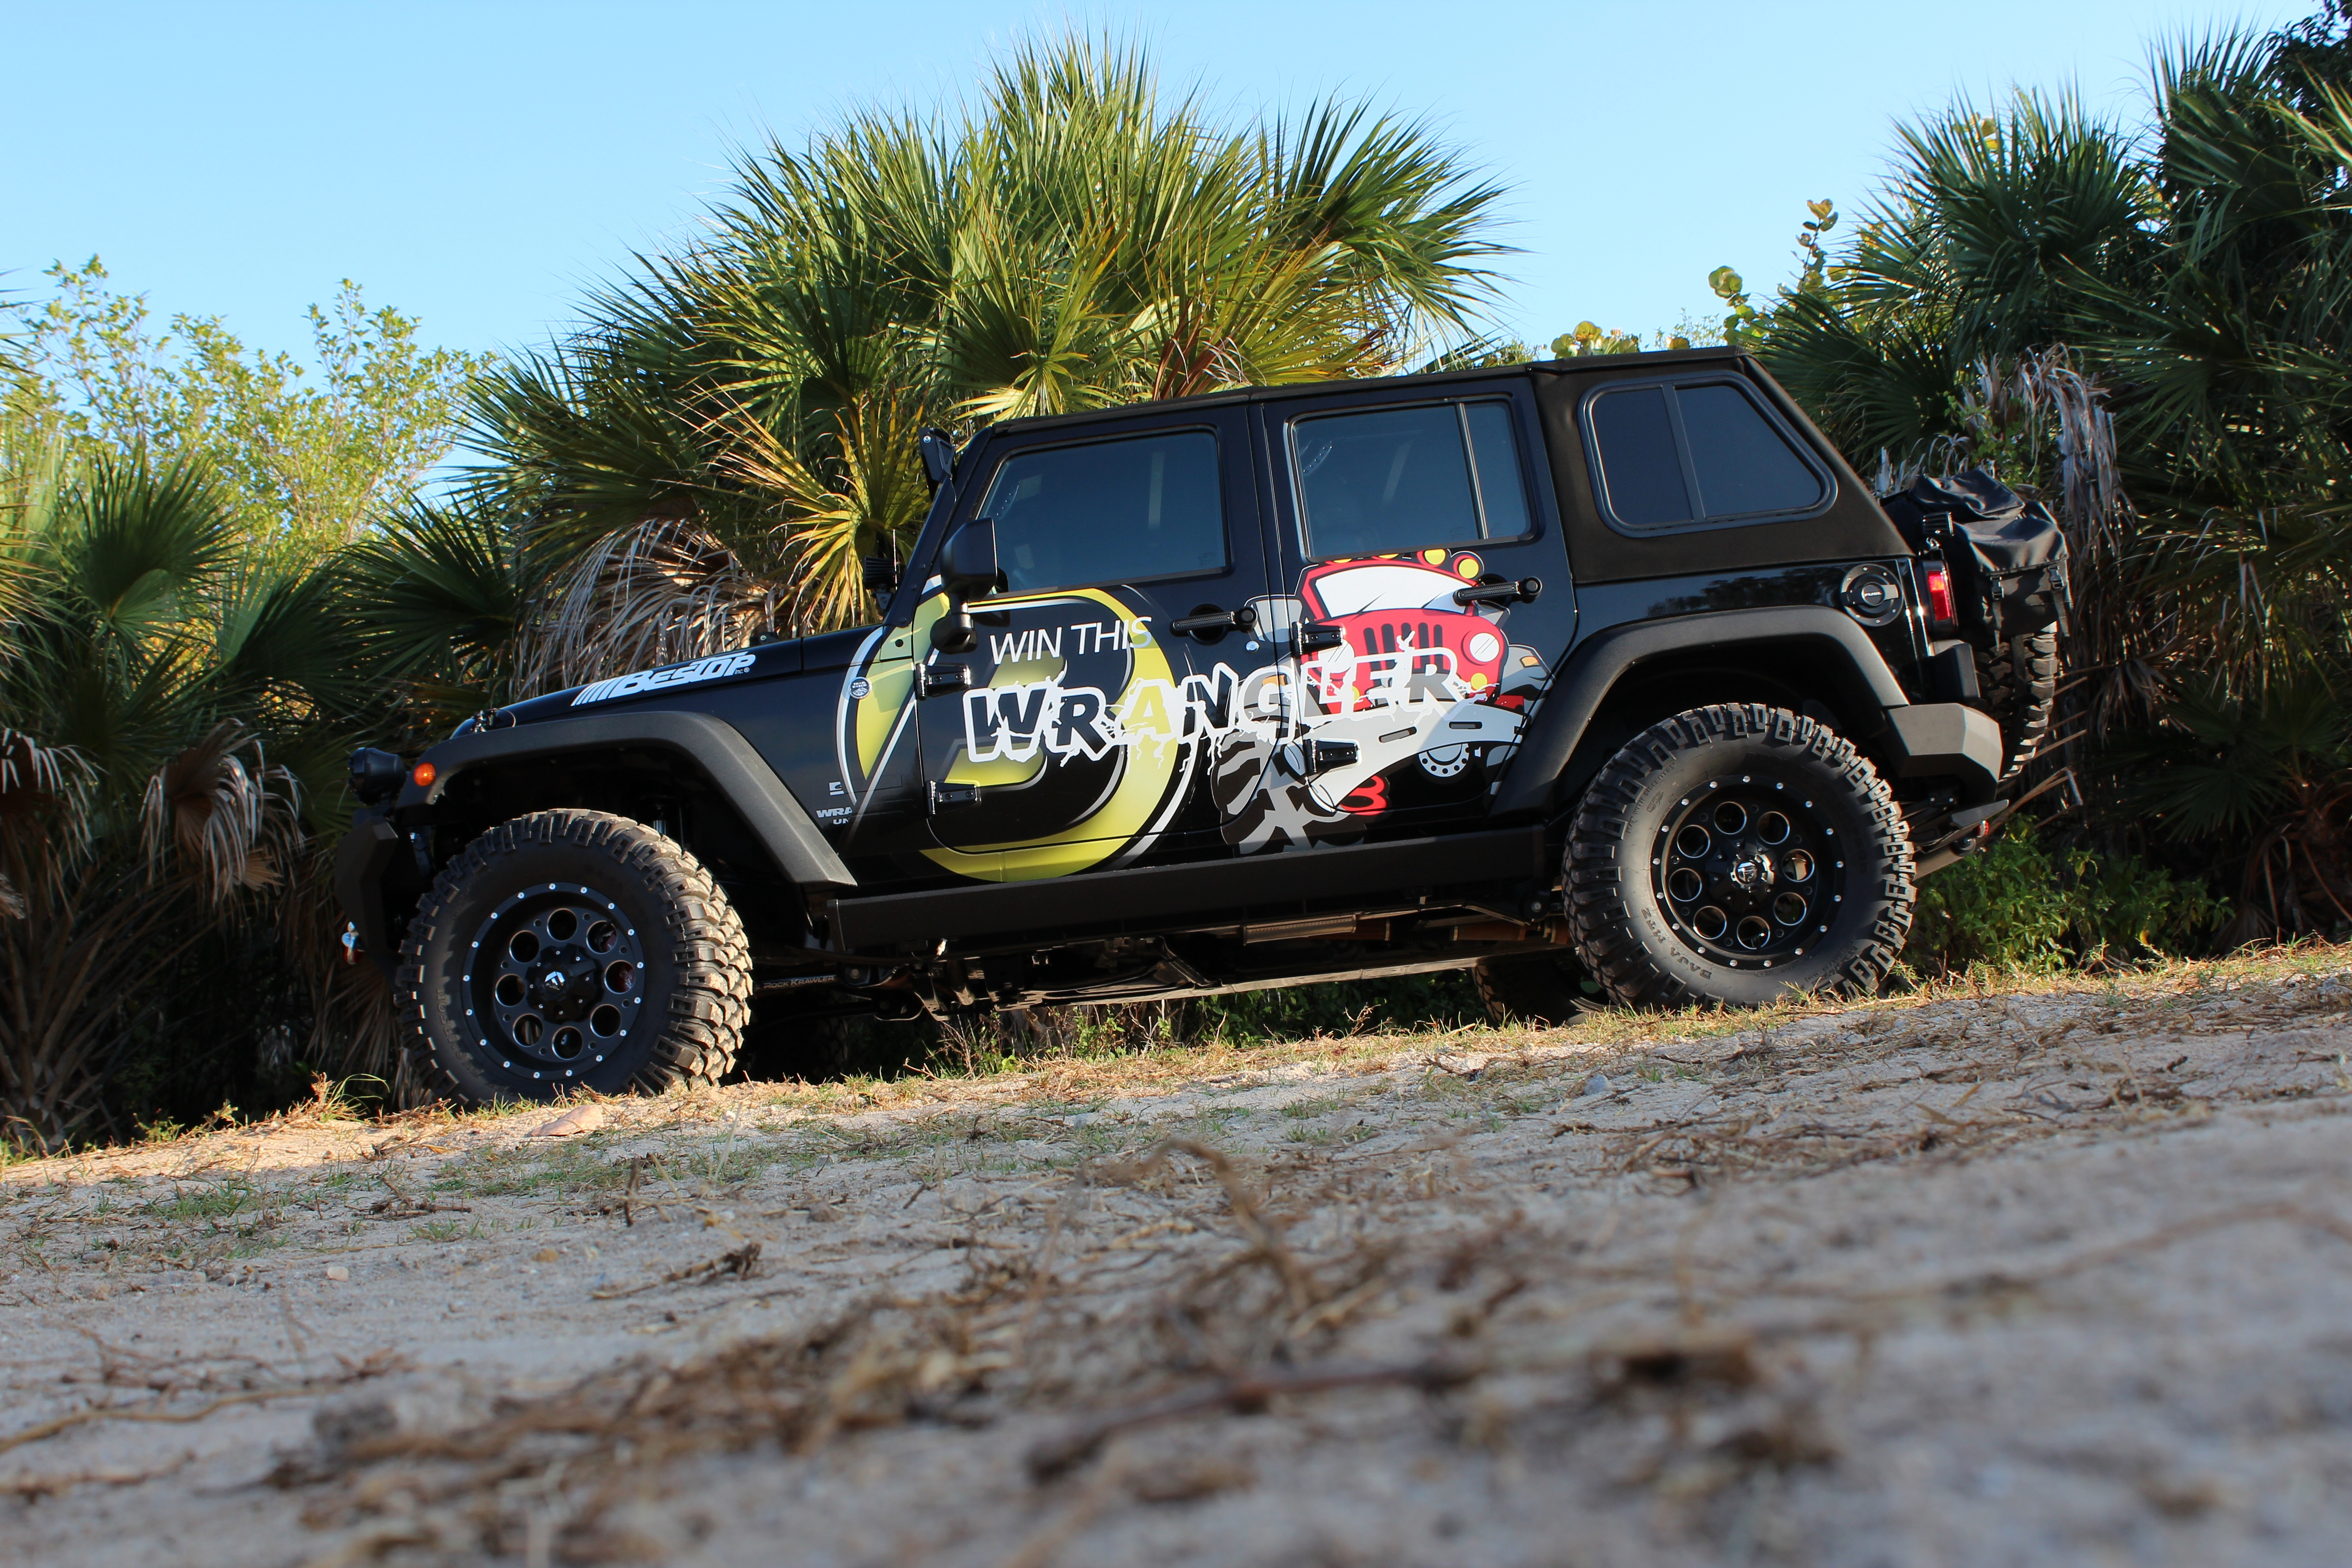 win this jeep !